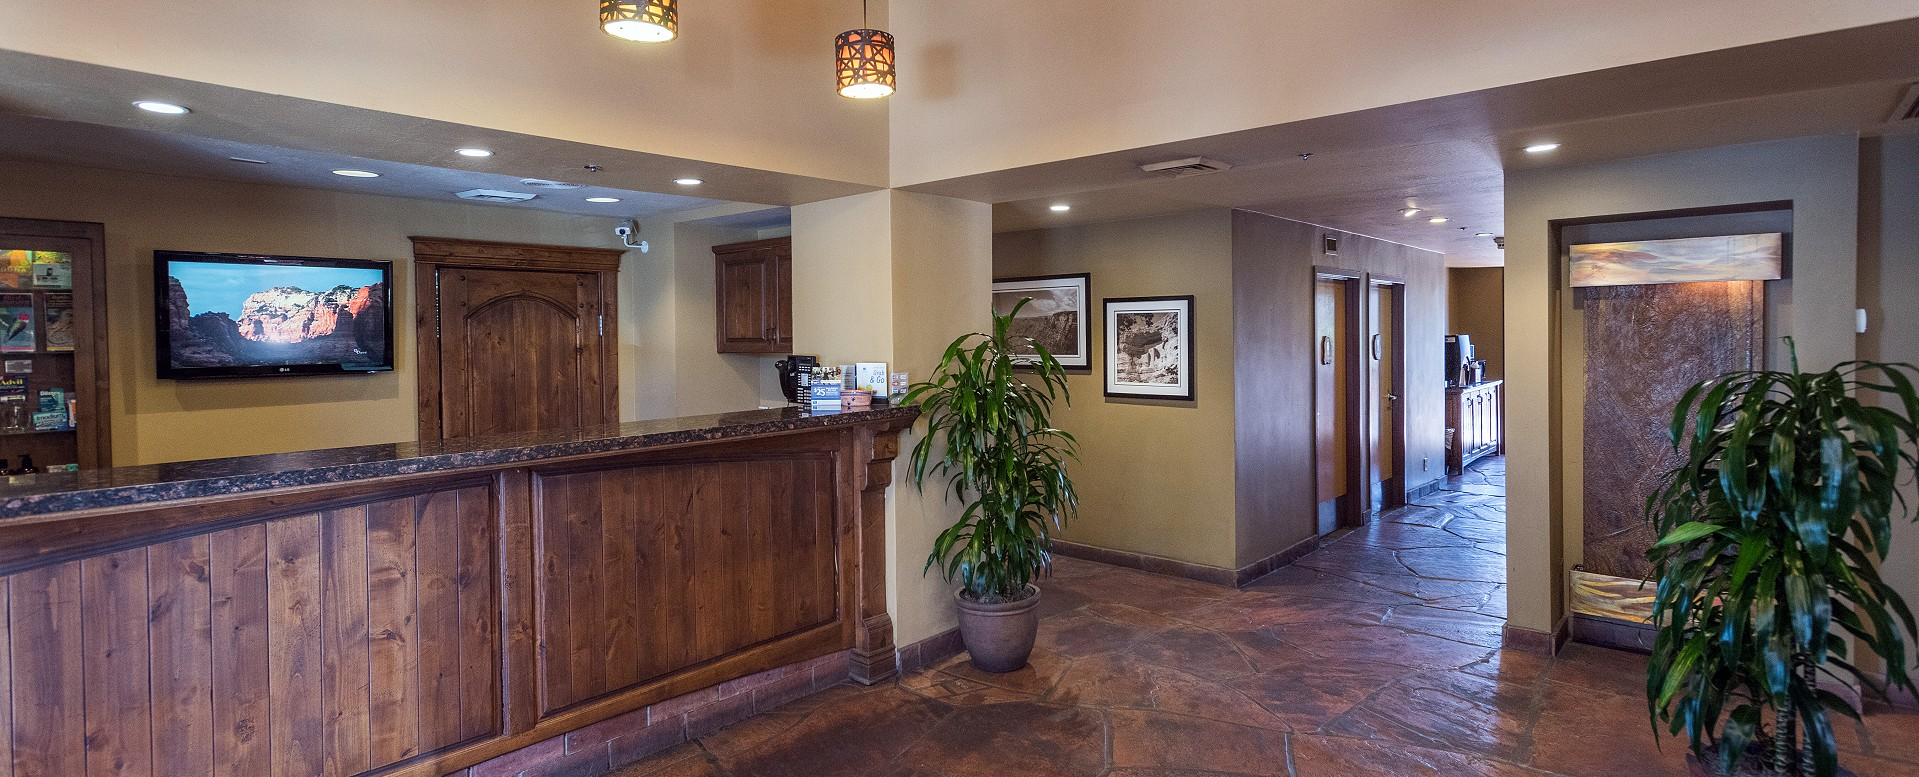 Best Western Plus Inn of Sedona-Front Desk